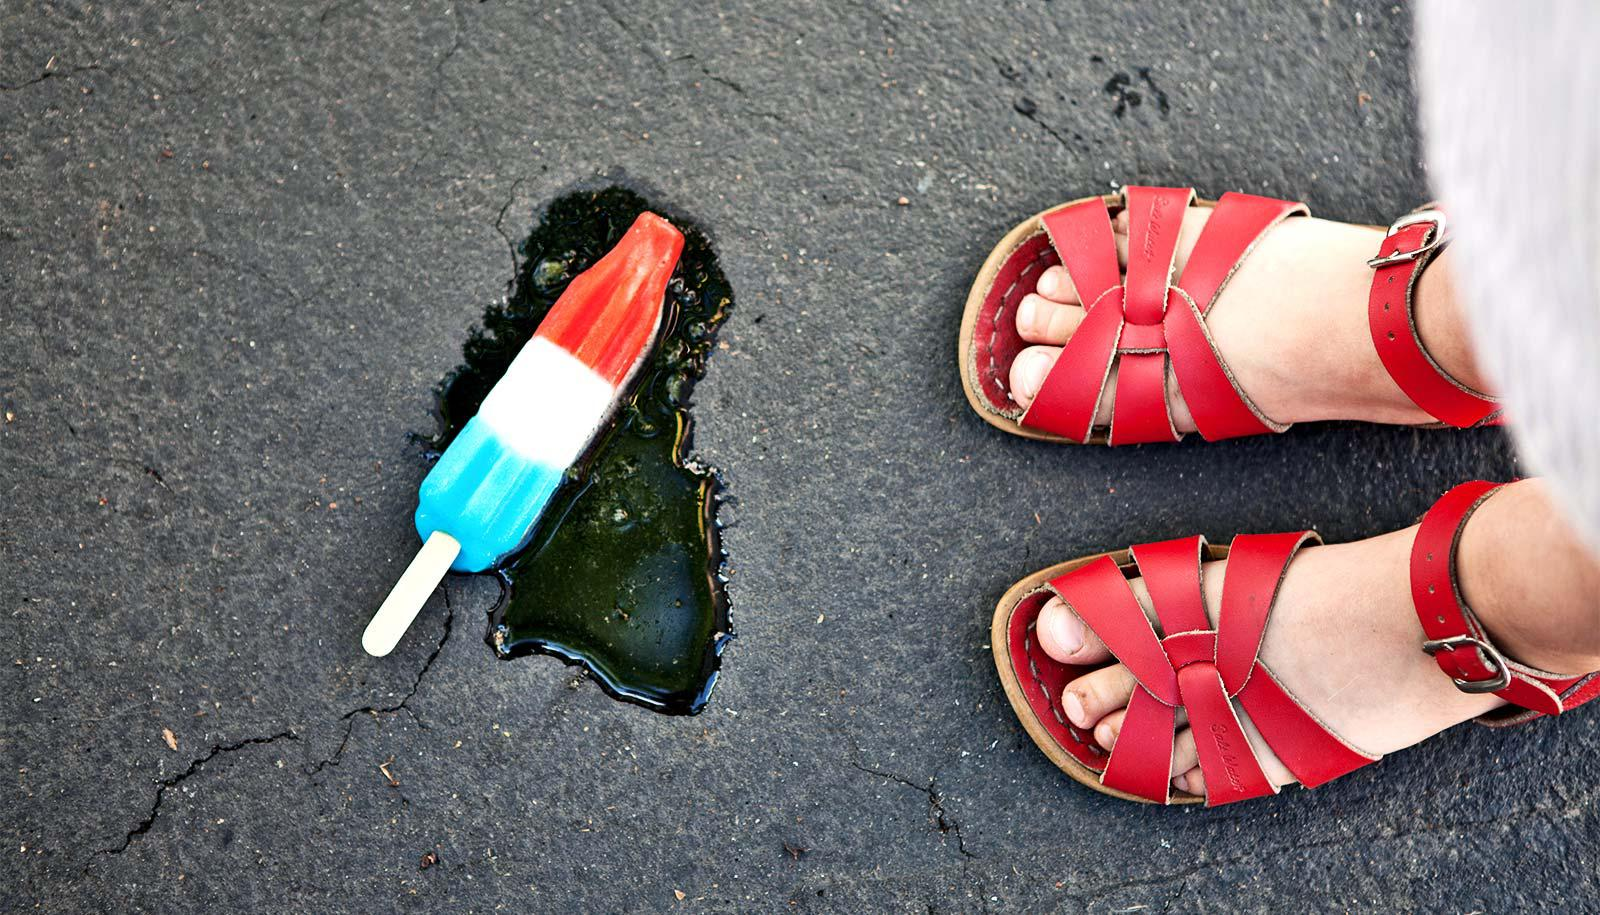 A young girl has dropped a red, white, and blue popsicle on concrete. The popsicle melts near her red sandals